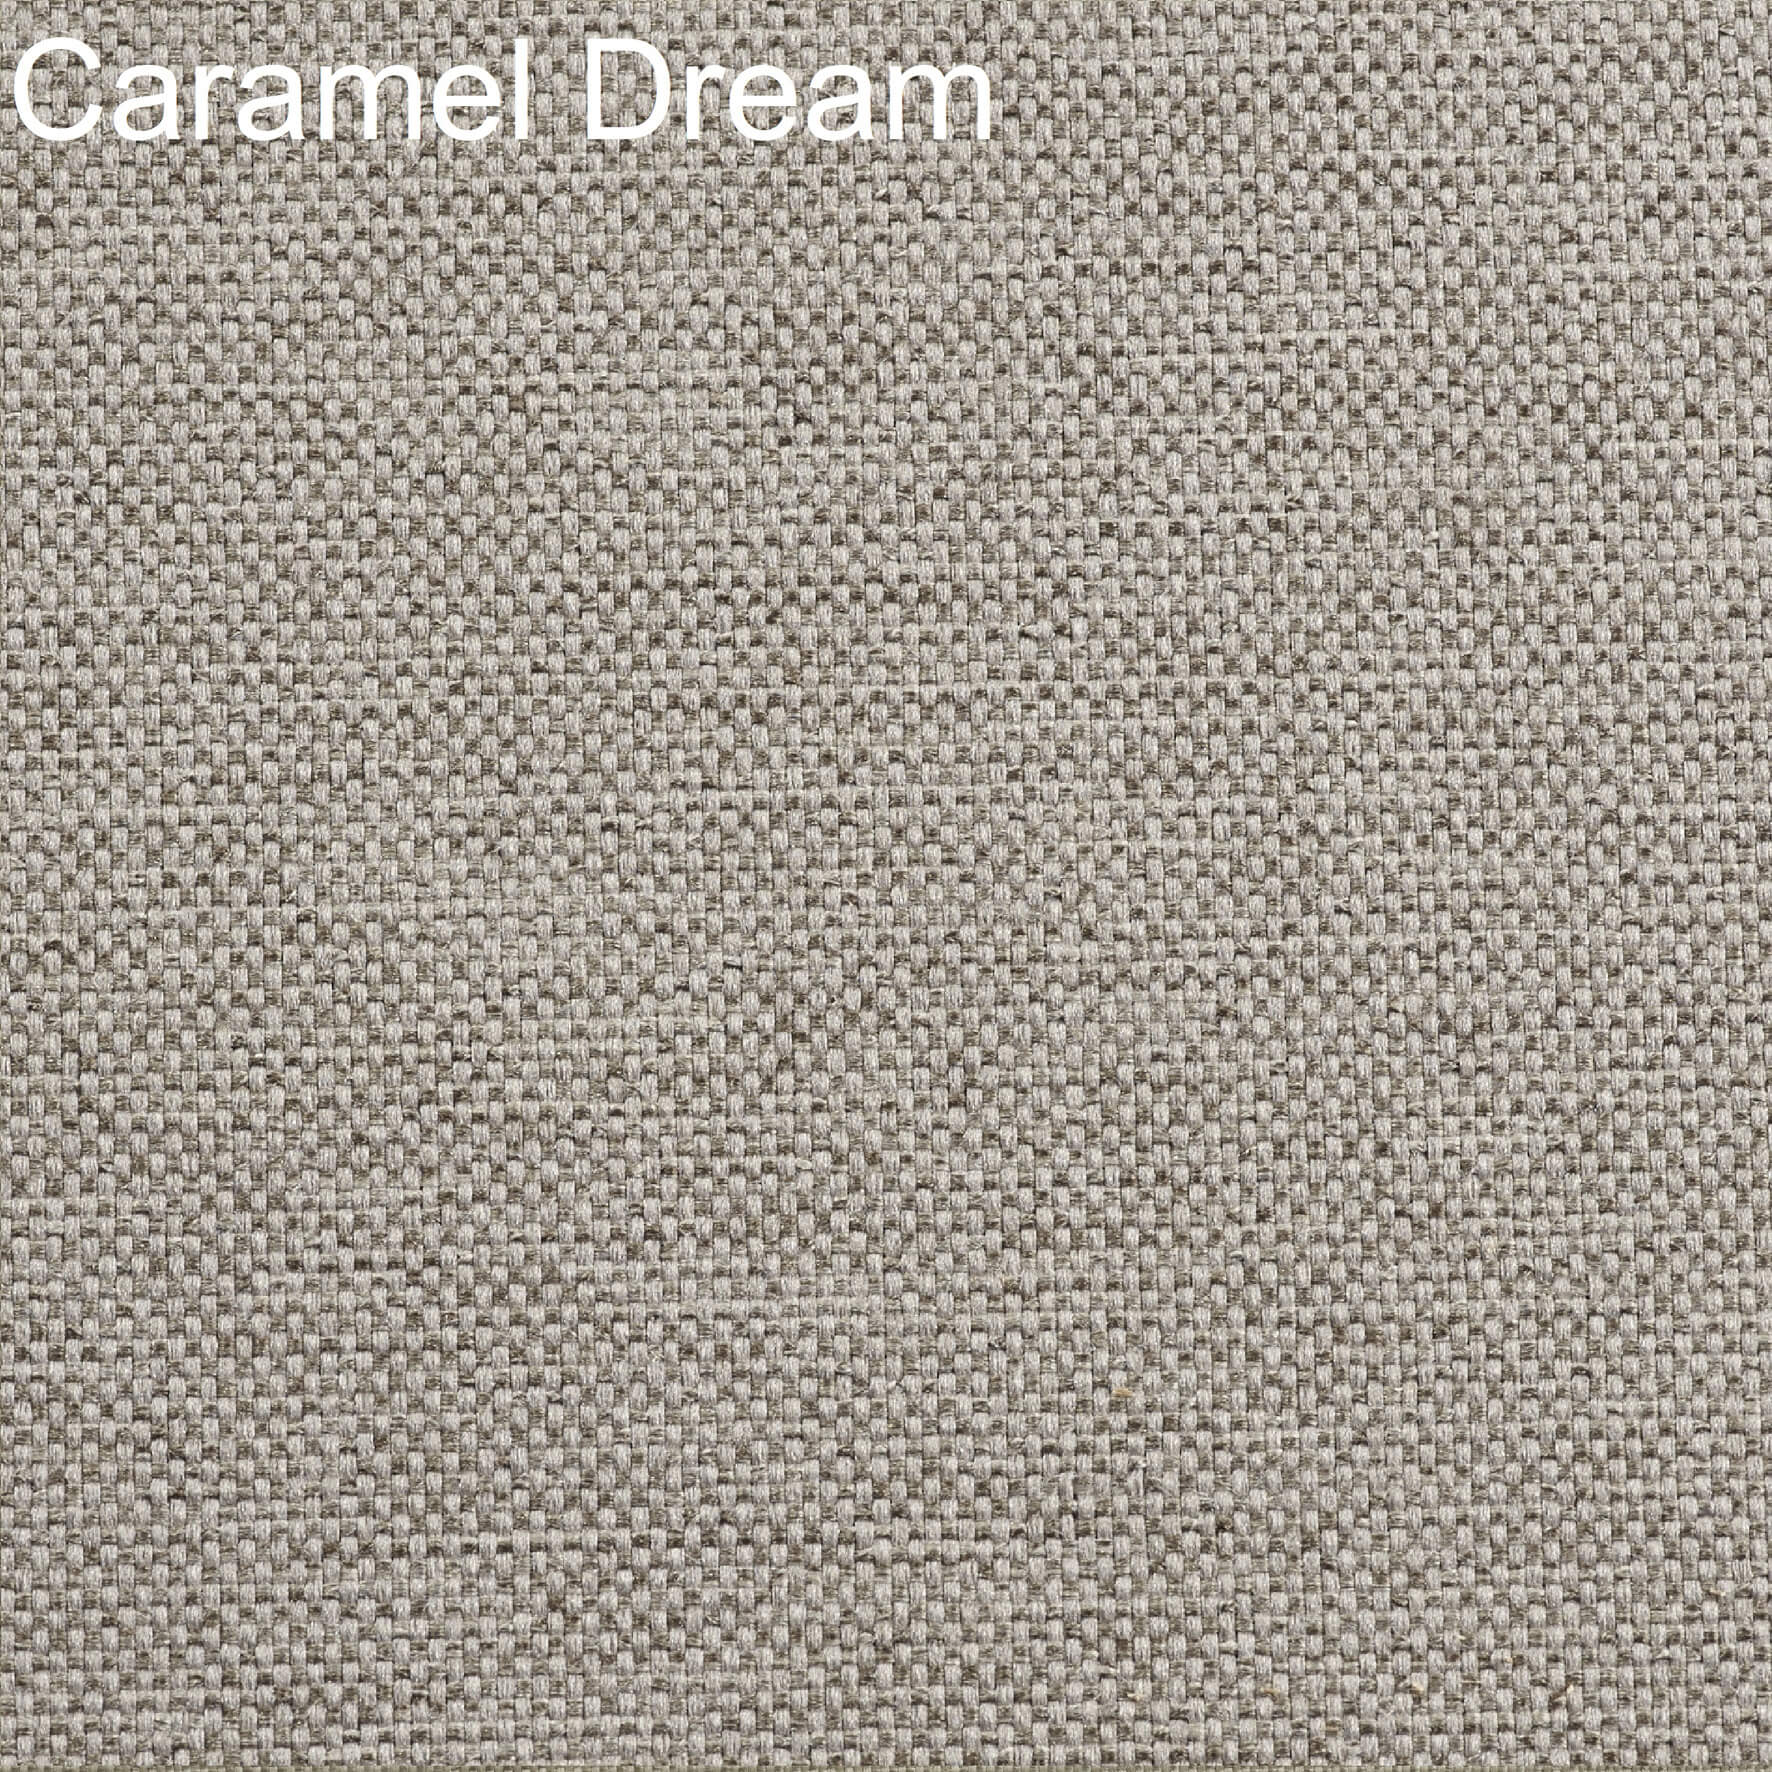 Caramel-Dream-Myers-Fabric-Swatch-Natural-Collection